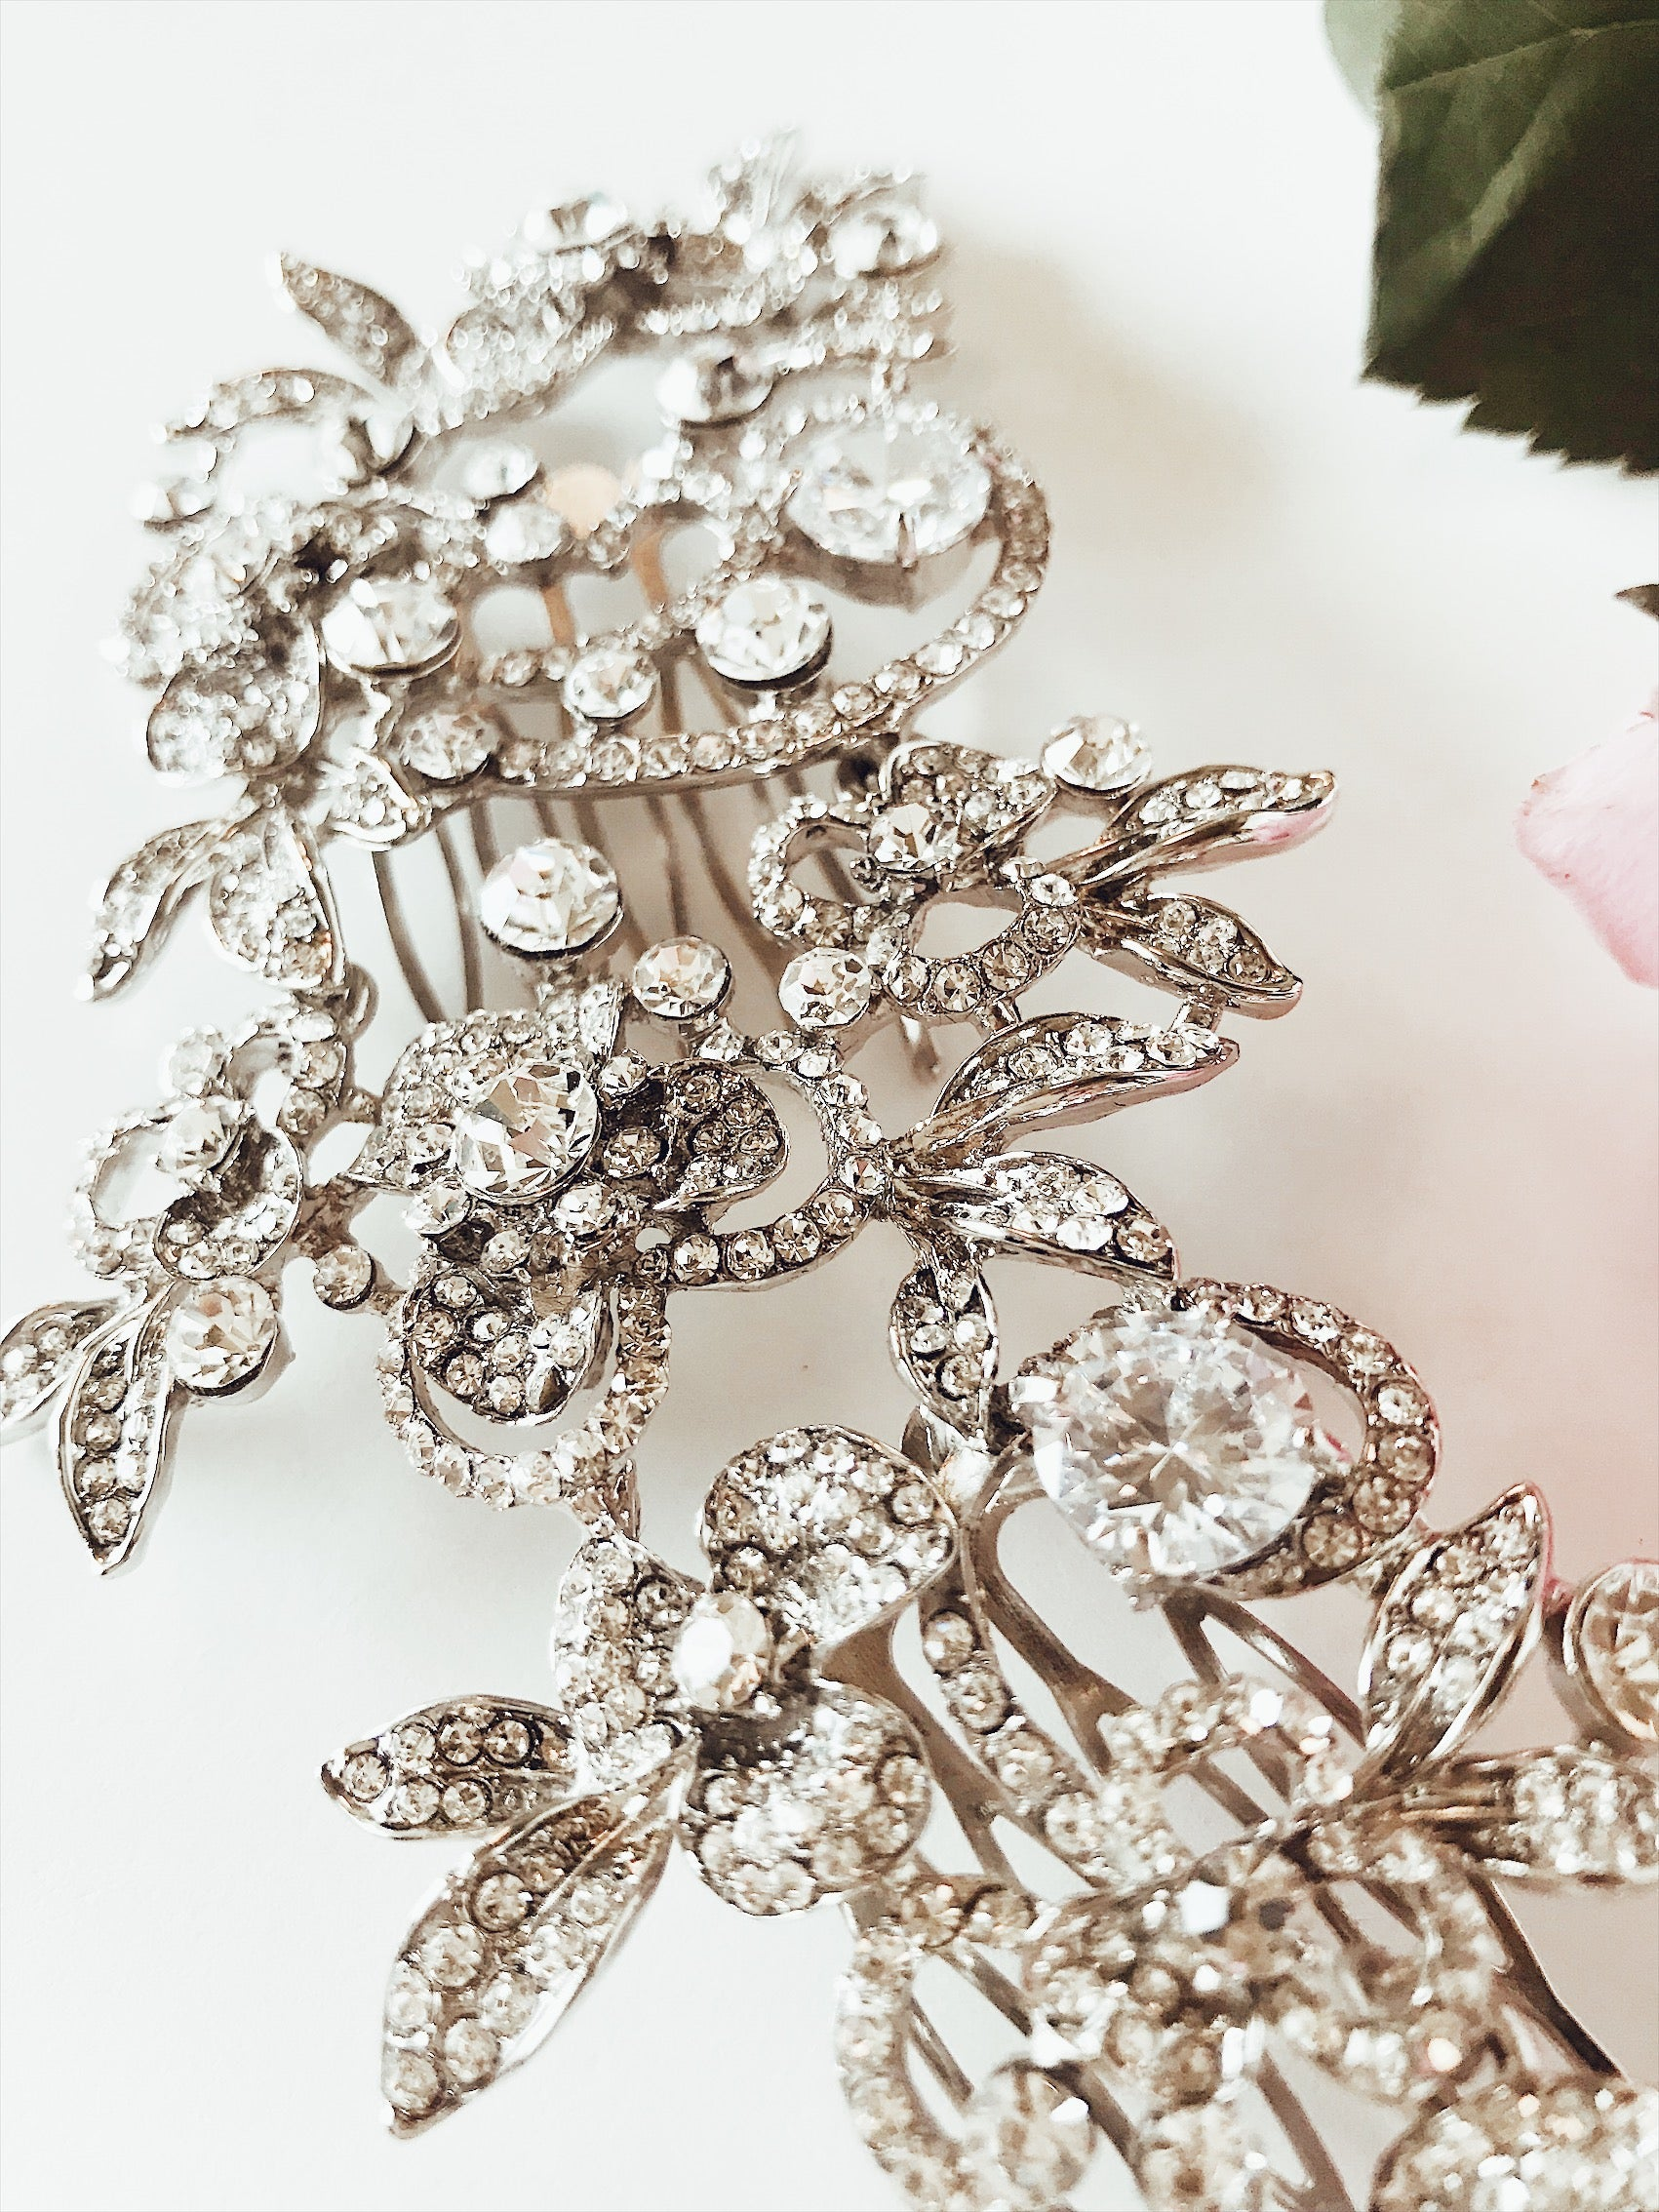 Crystal encrusted bridal hair comb with art-deco patterning by Lauren Elaine Bridal Accessories